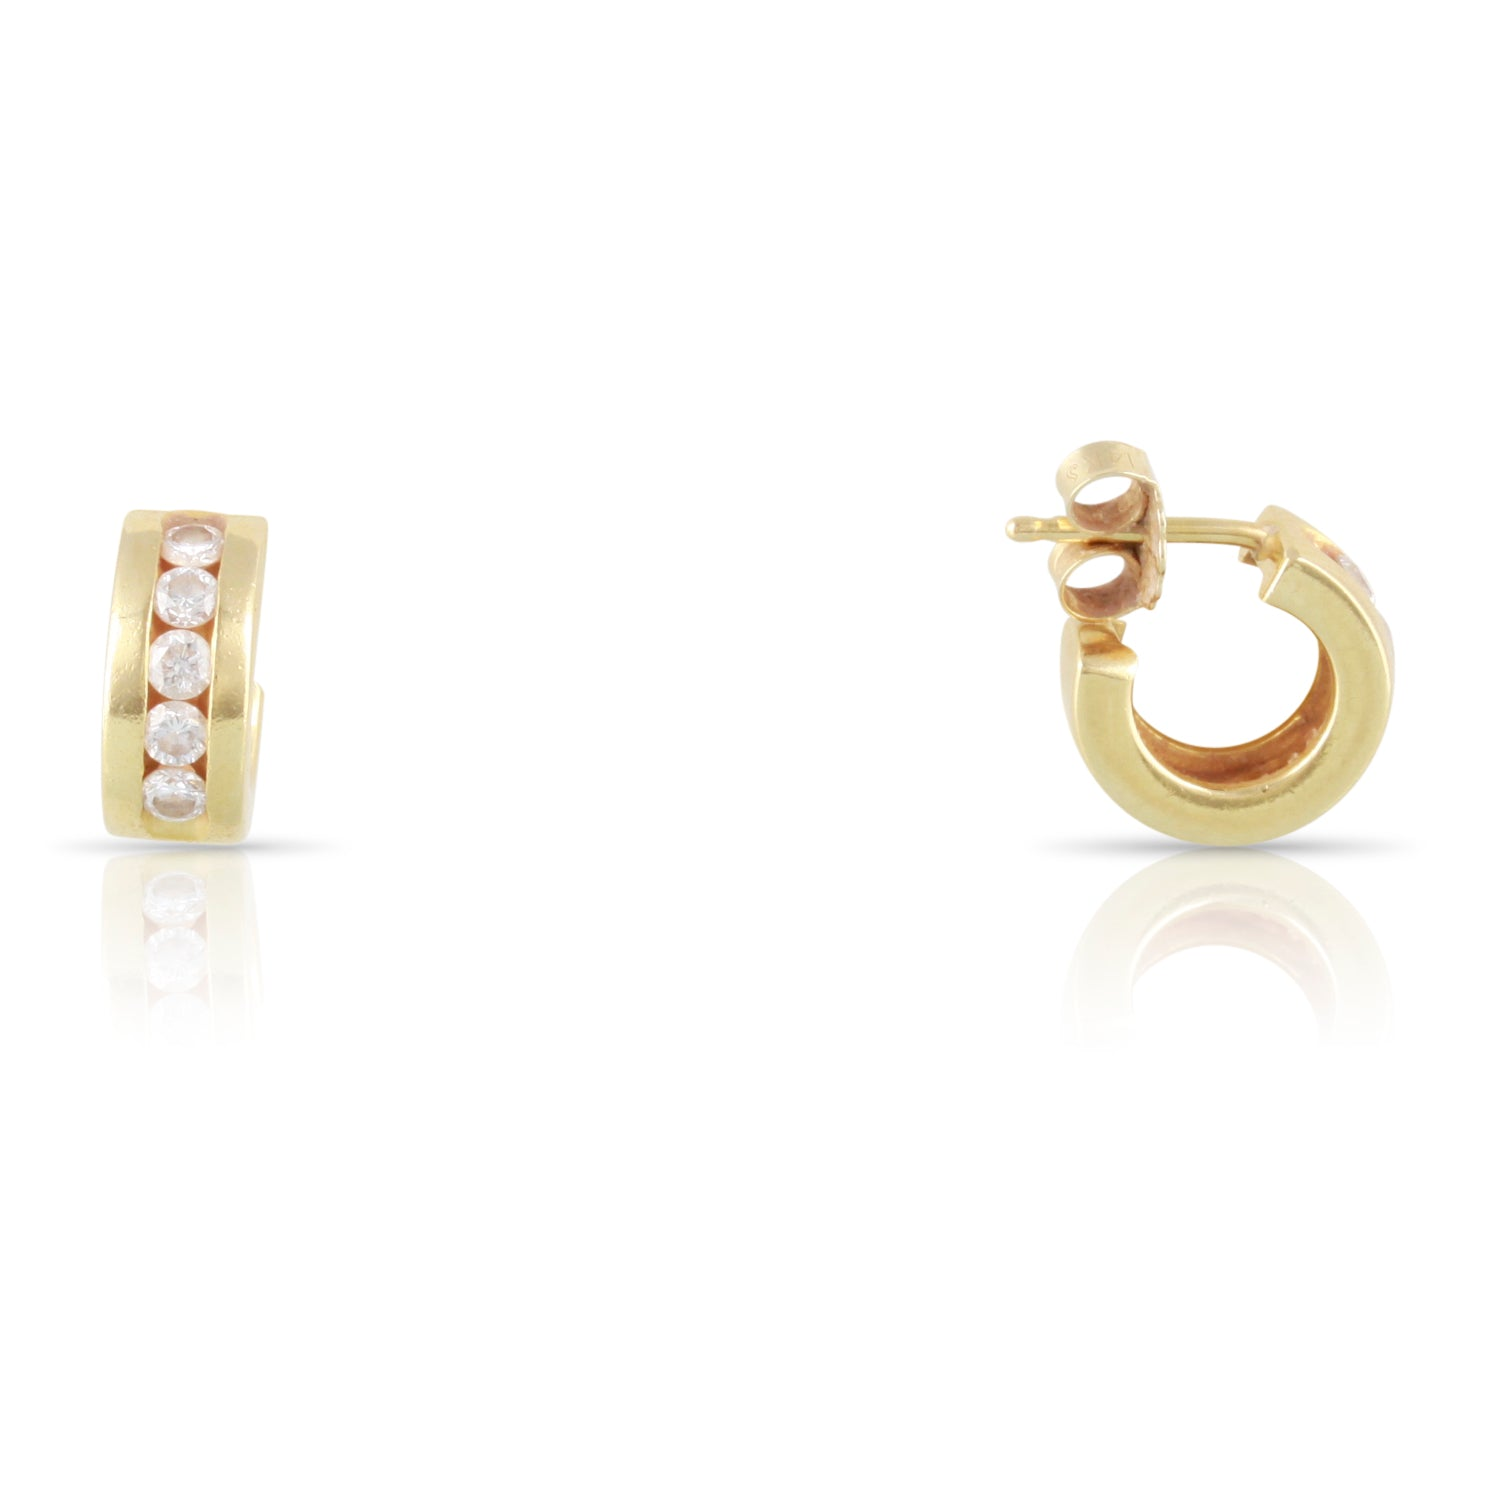 Diamond and Yellow Gold Hoop Earrings | The Adam